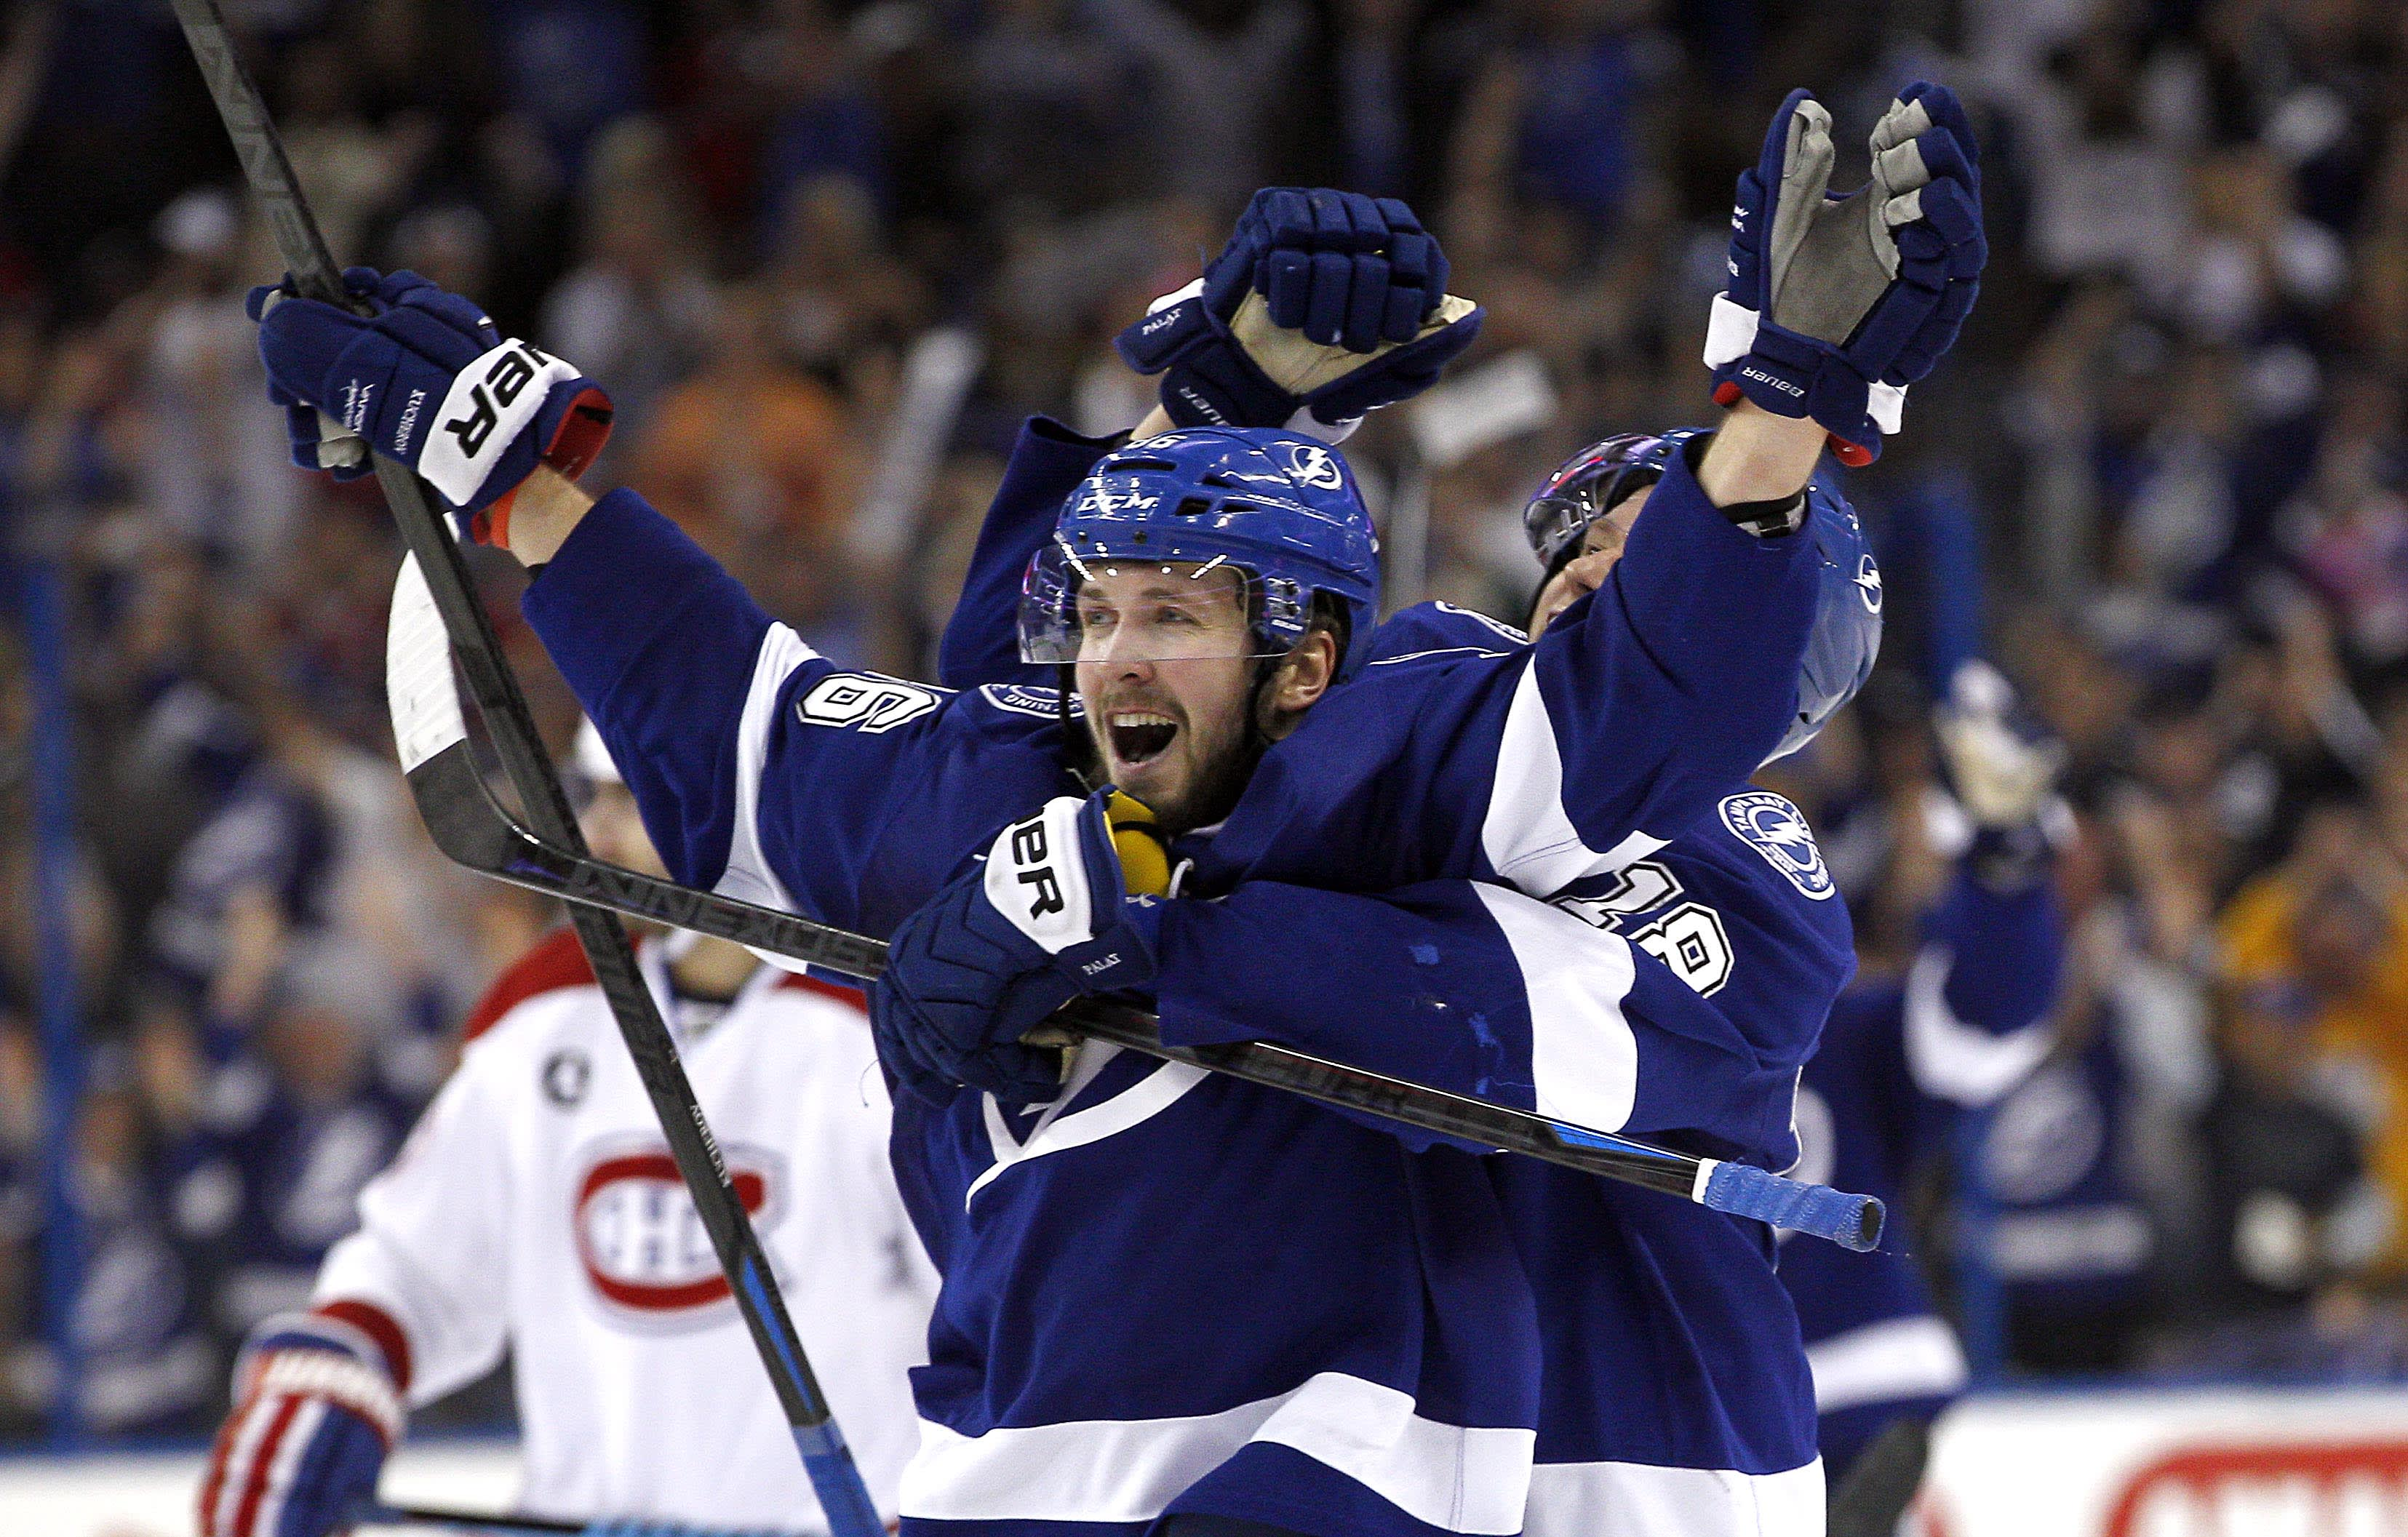 NHL: Stanley Cup Playoffs-Montreal Canadiens at Tampa Bay Lightning